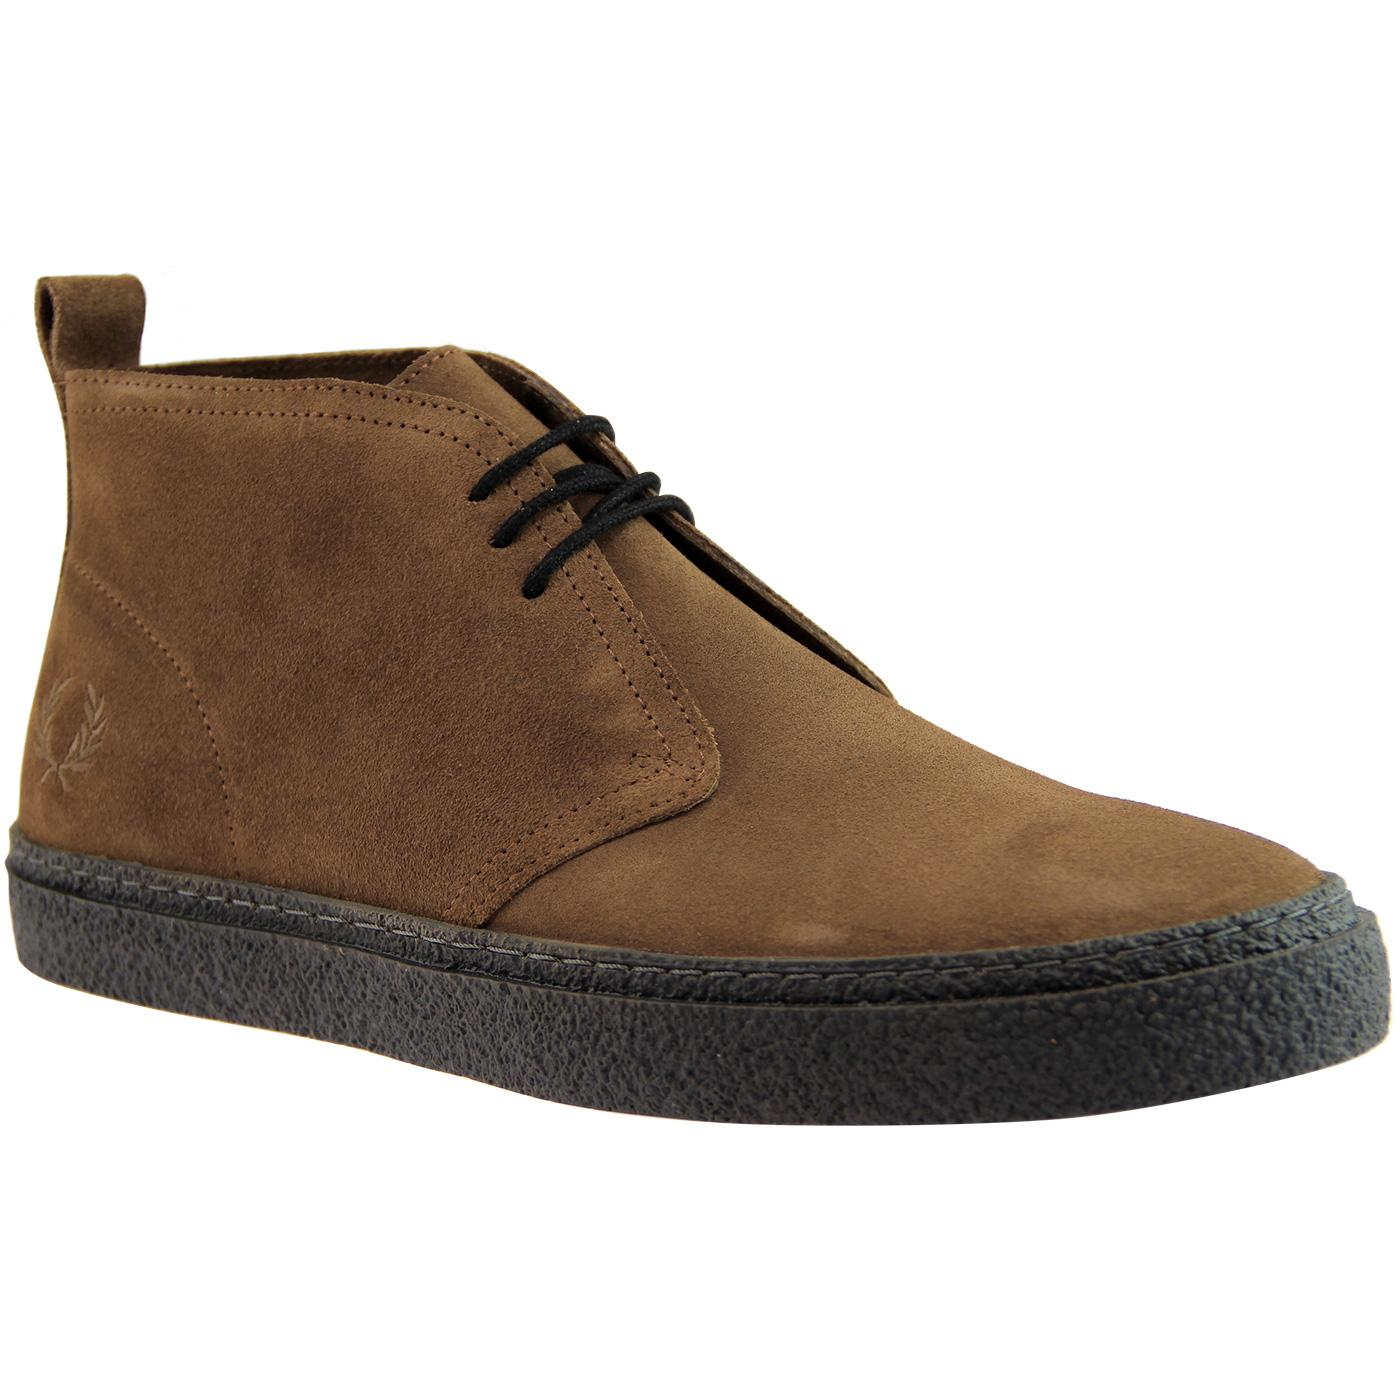 Hawley FRED PERRY Retro Mod Desert Boots - Tobacco